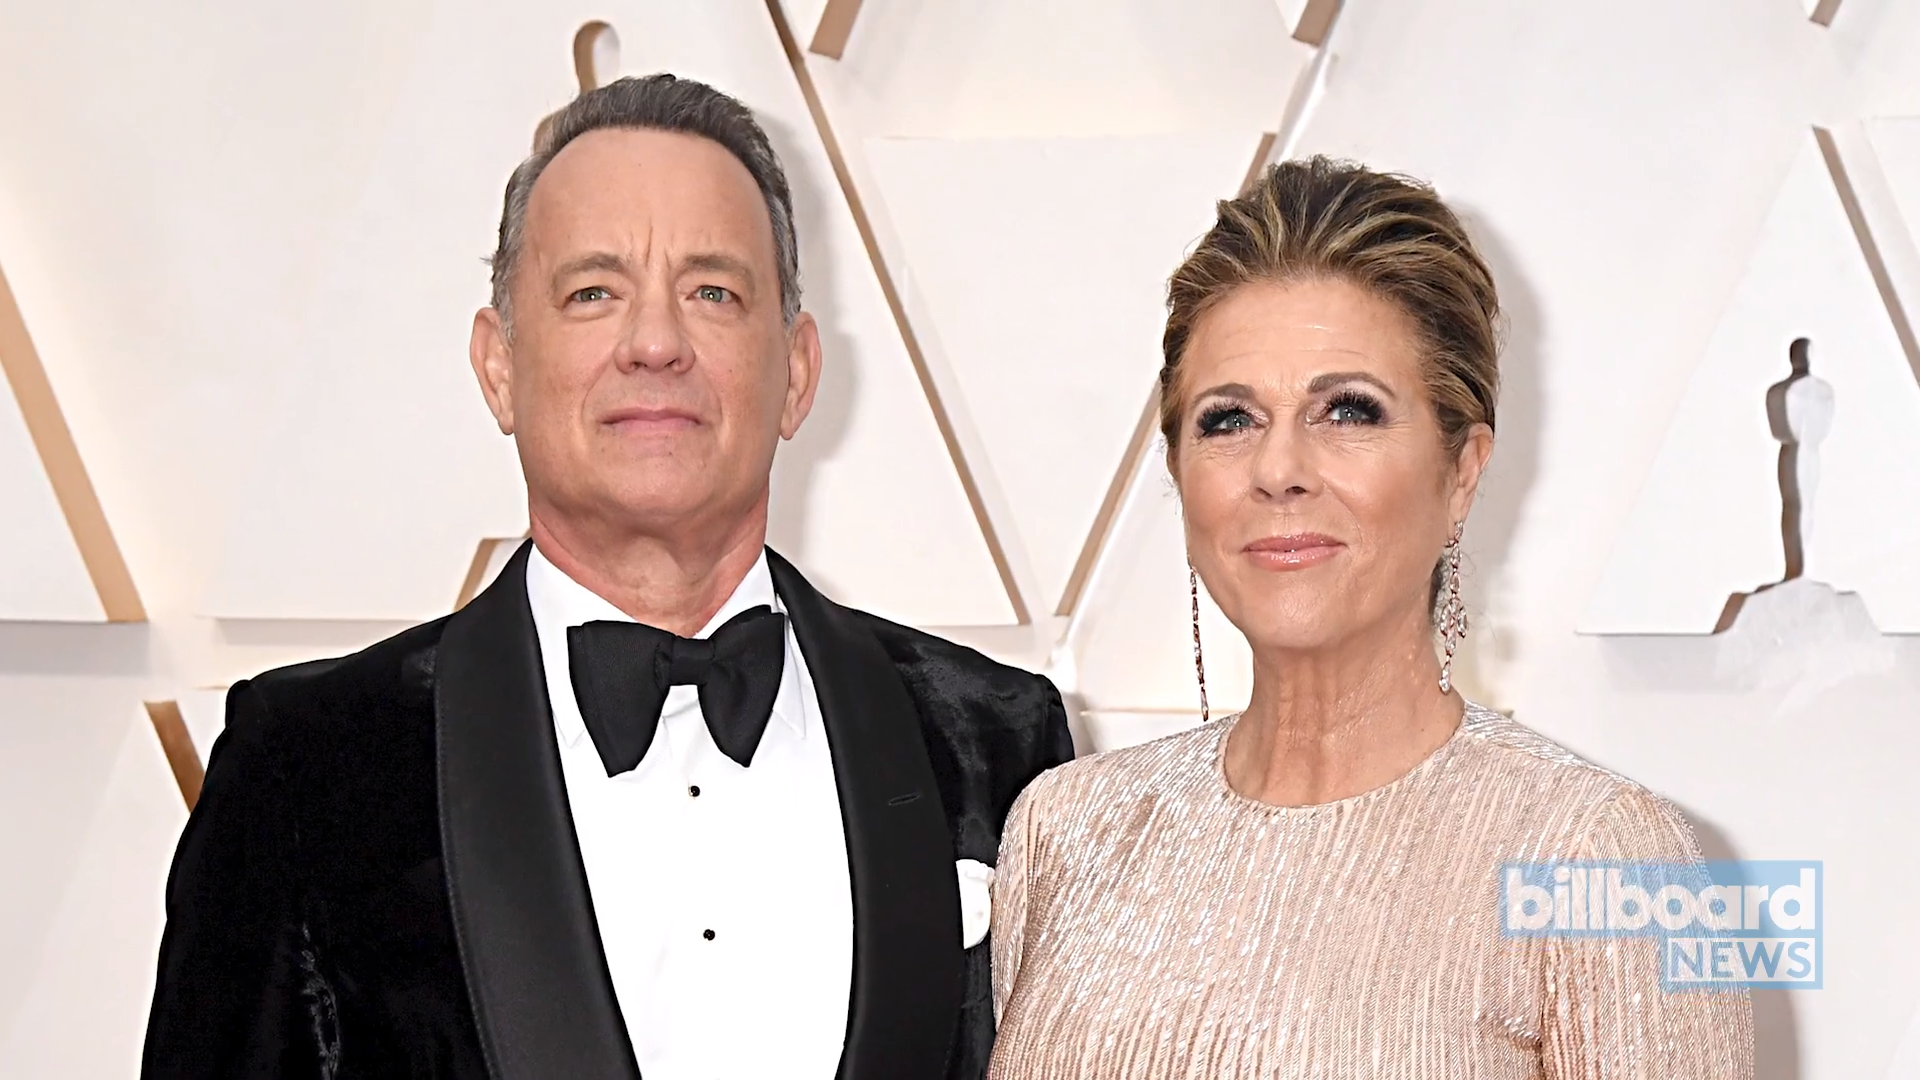 Celebs Voice Support For Tom Hanks and Rita Wilson Following Coronavirus Diagnosis: 'We All Love You'